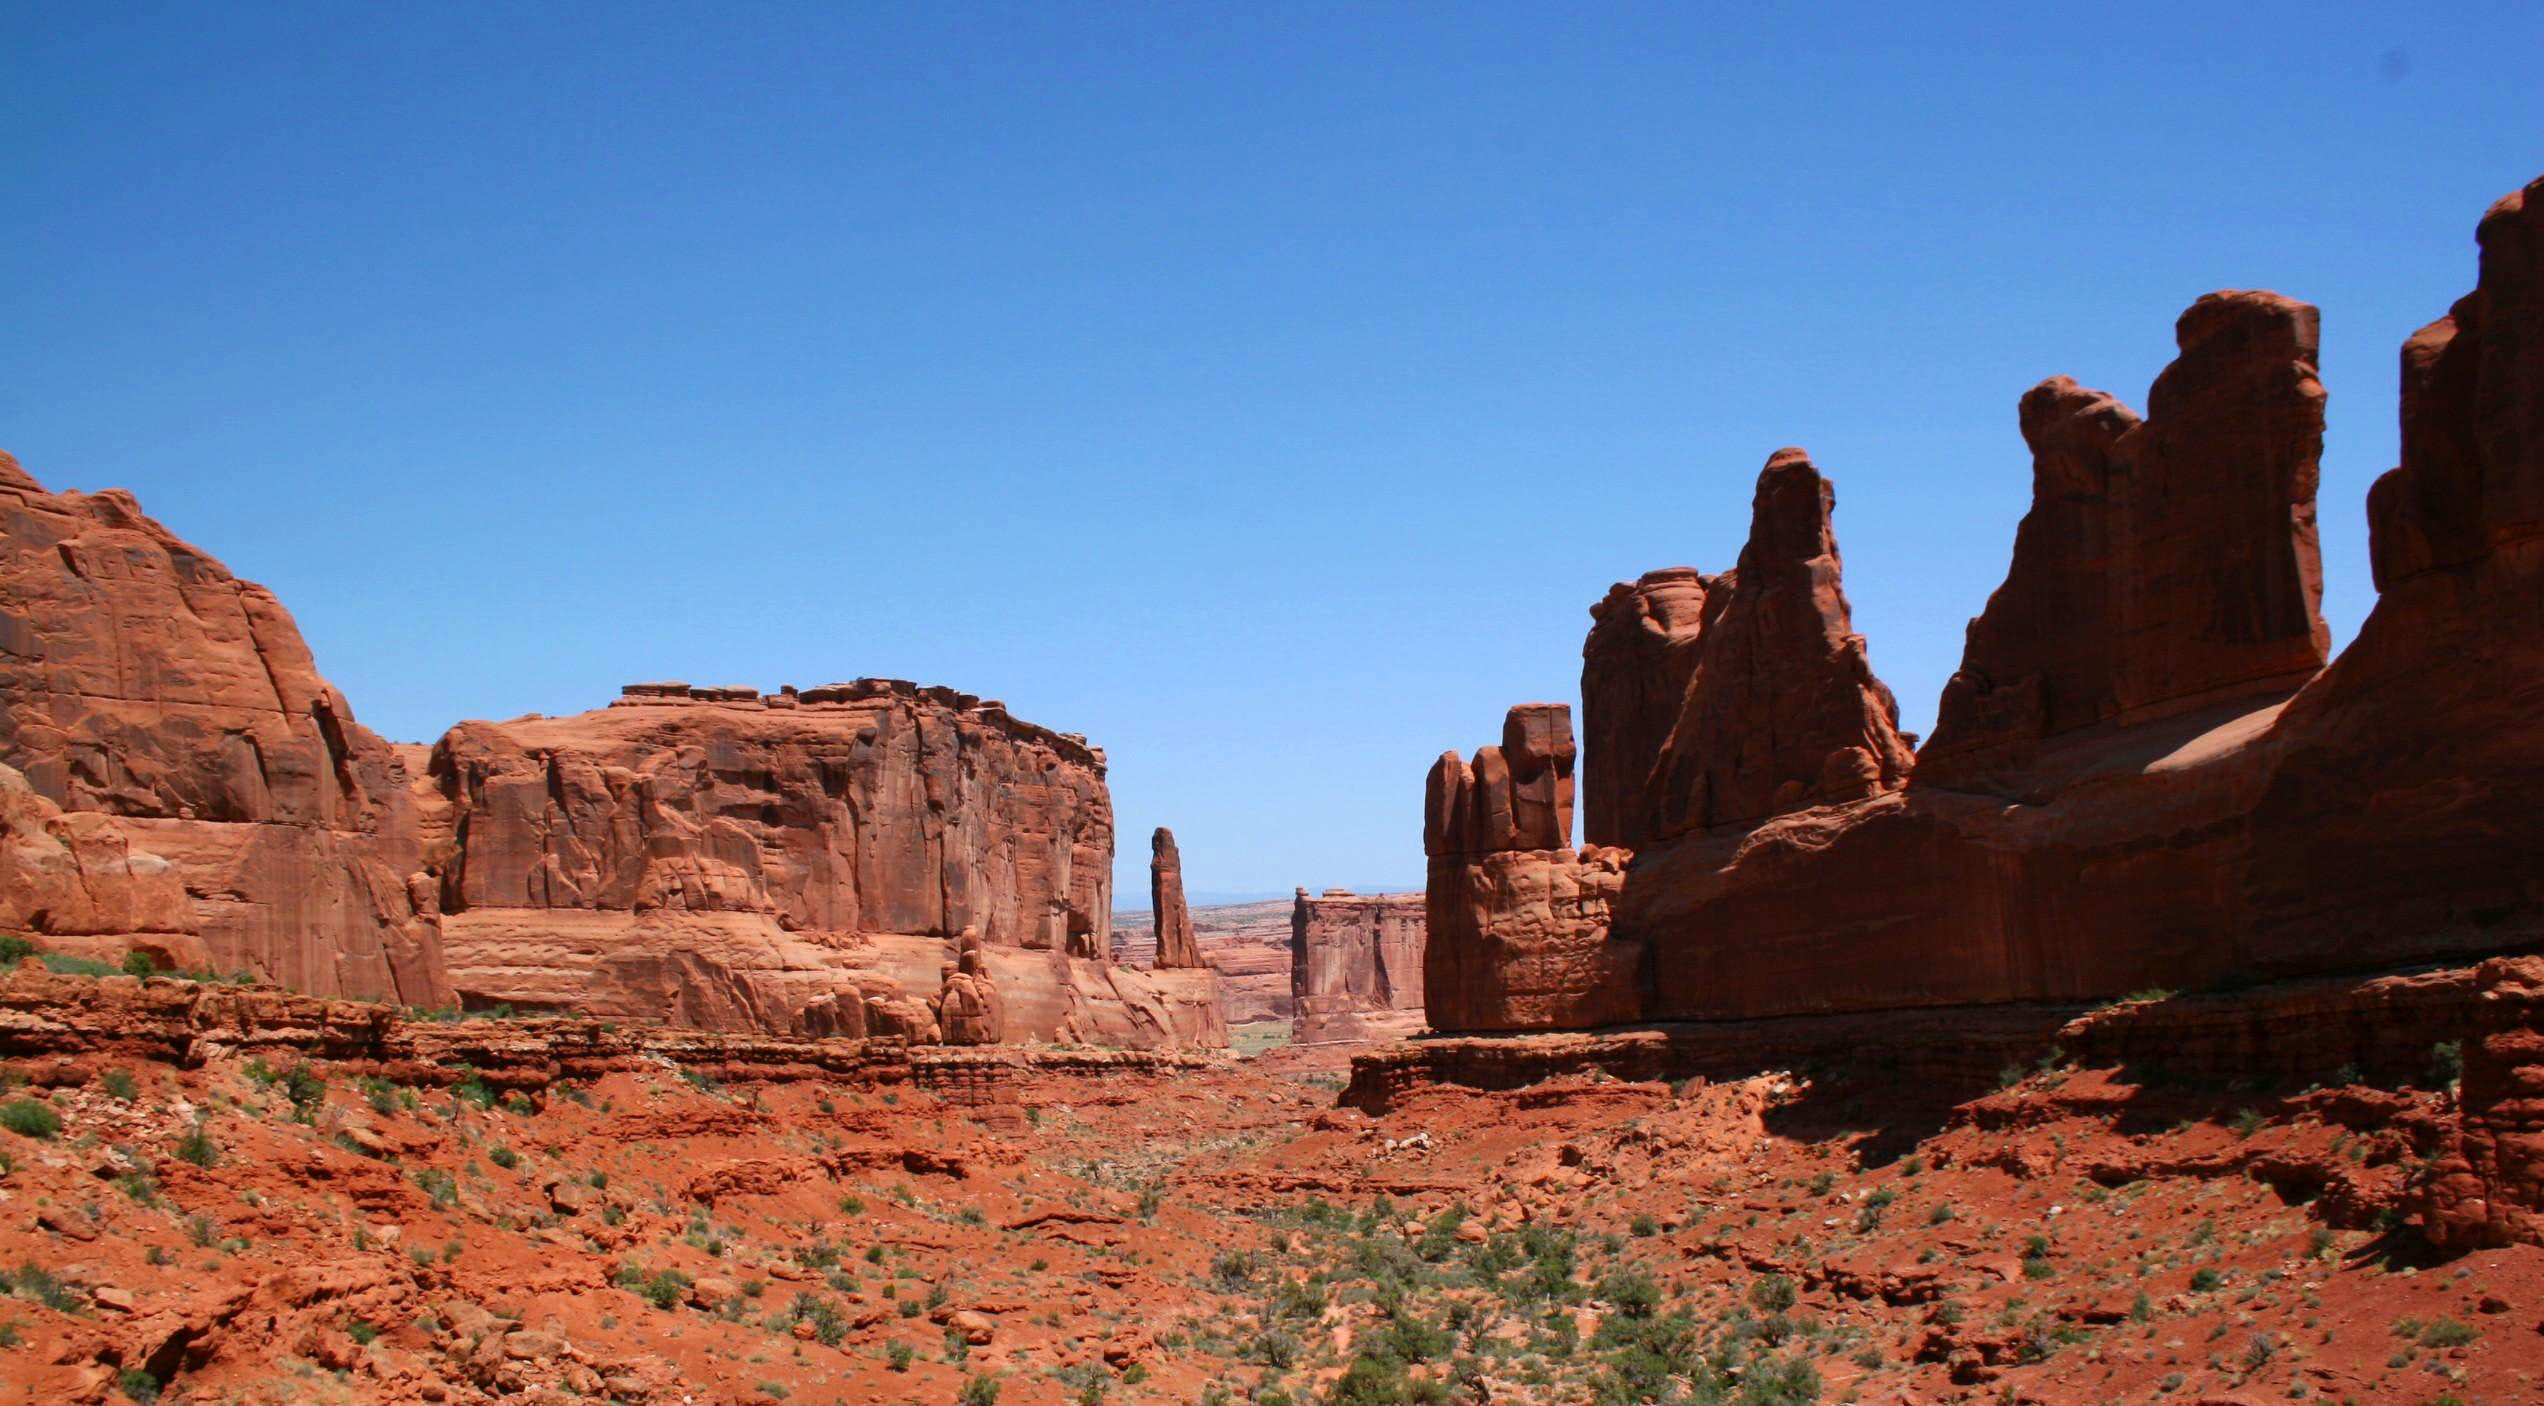 Burning So Good:  Arches National Park